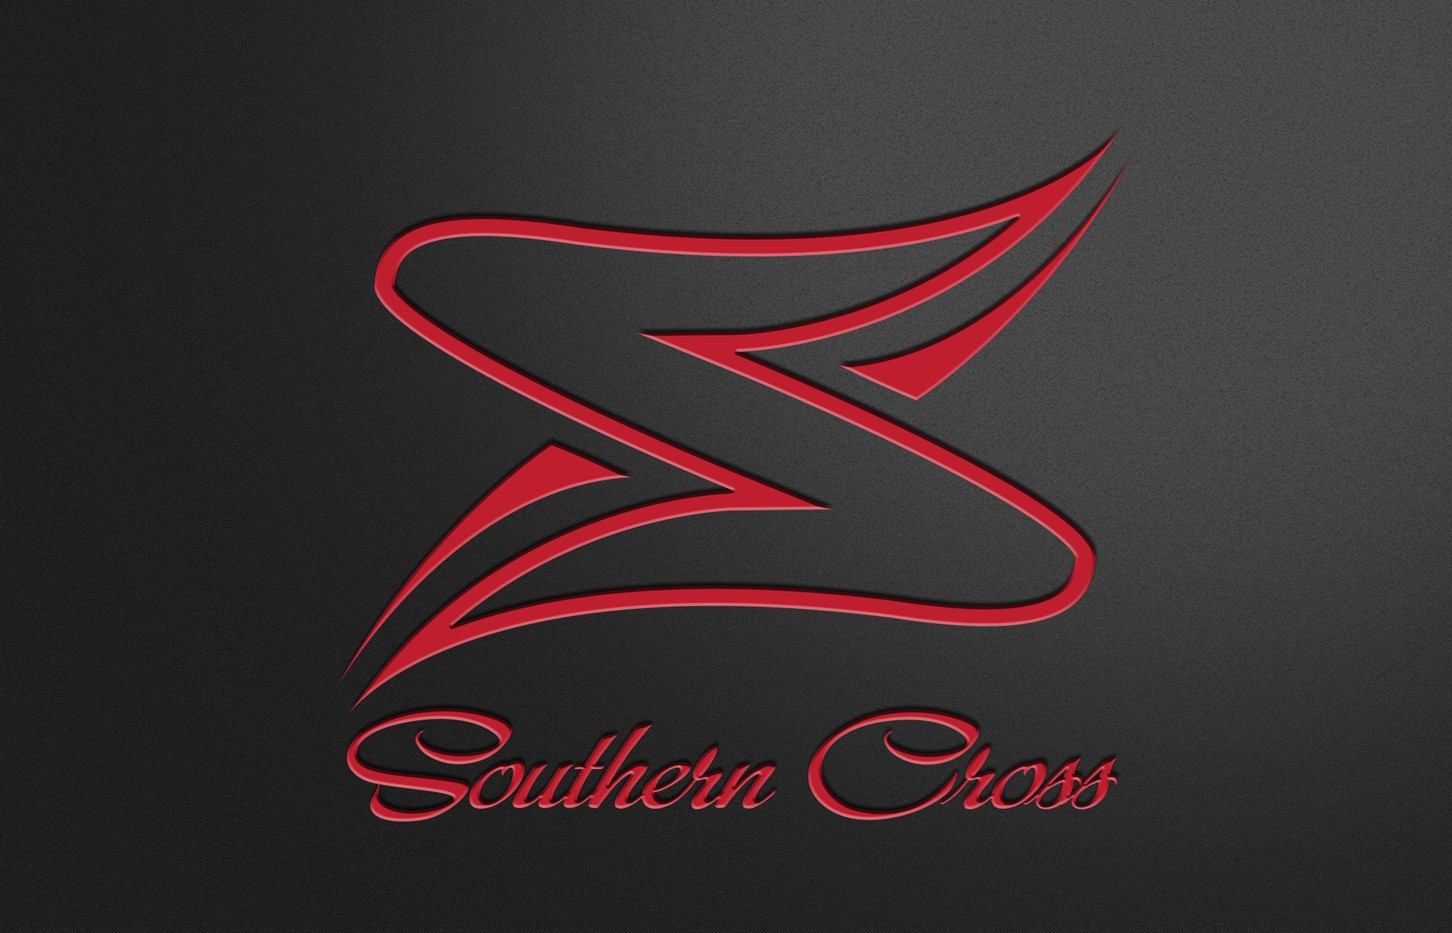 New logo wanted for The letter S